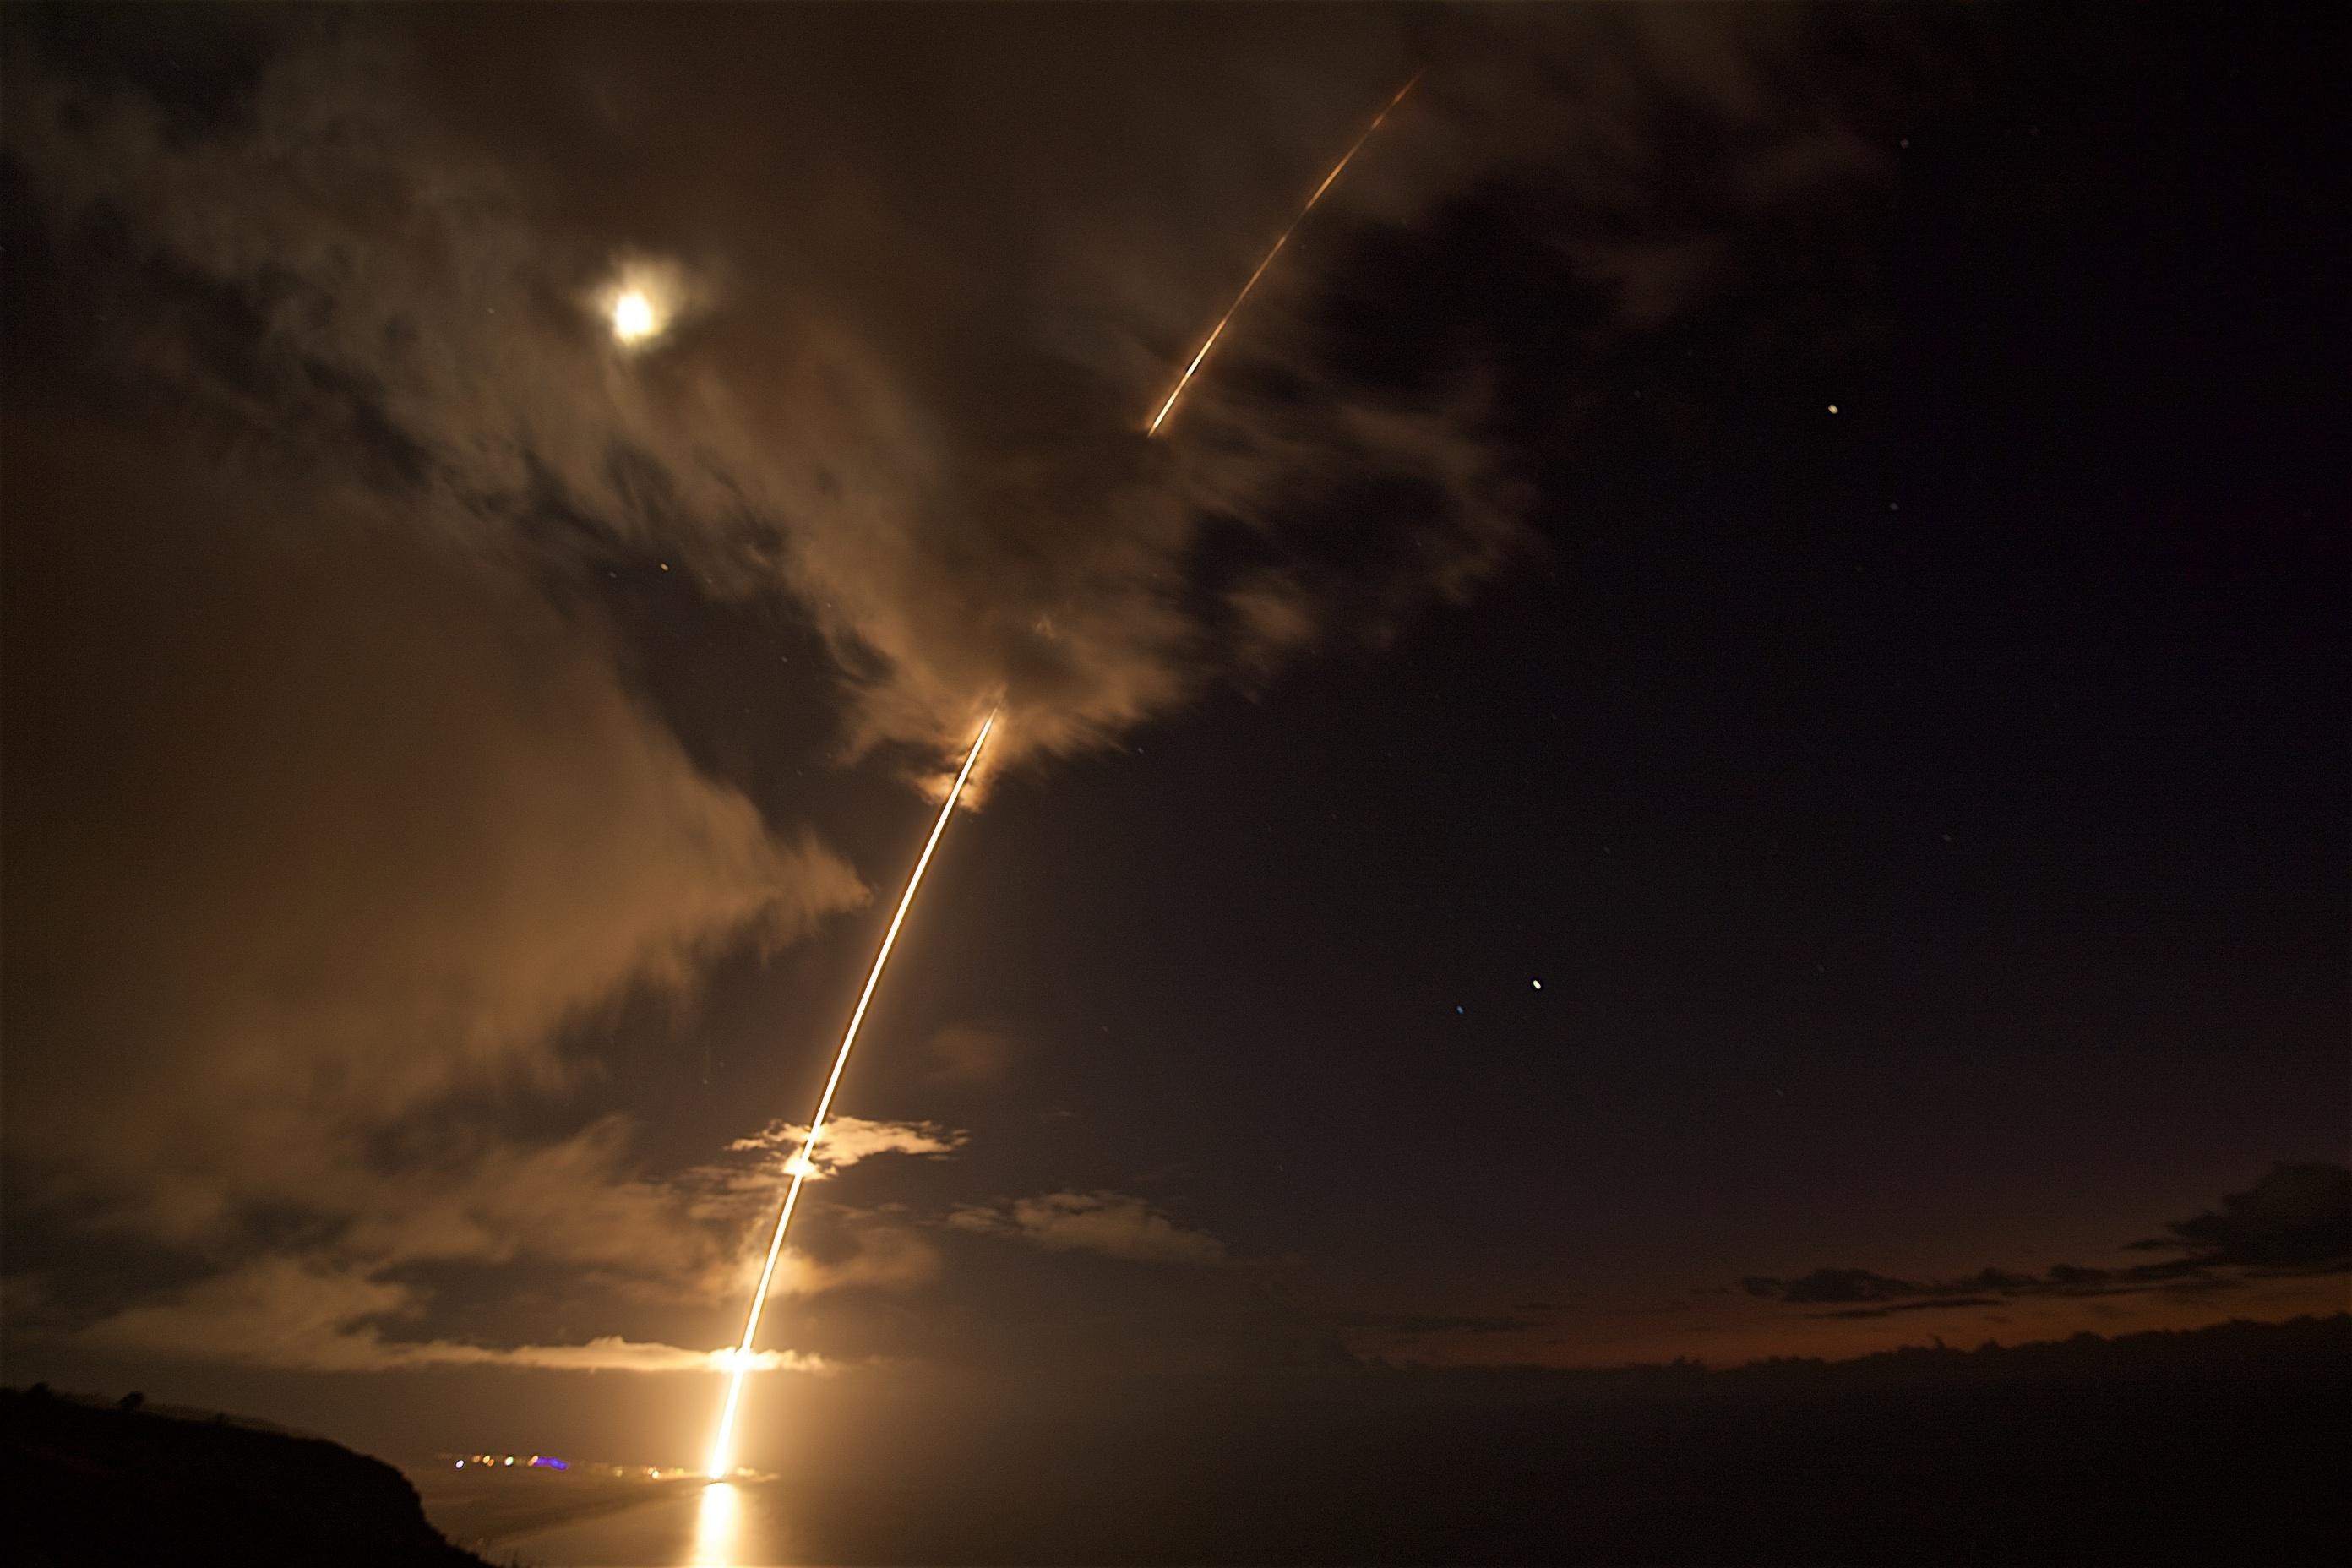 A medium-range ballistic missile target is launched from the Pacific Missile Range Facility on Kauai, Hawaii, during Flight Test Standard Missile-27 Event 2 (FTM-27 E2) on Aug. 29 (HST). (Missile Defense Agency)